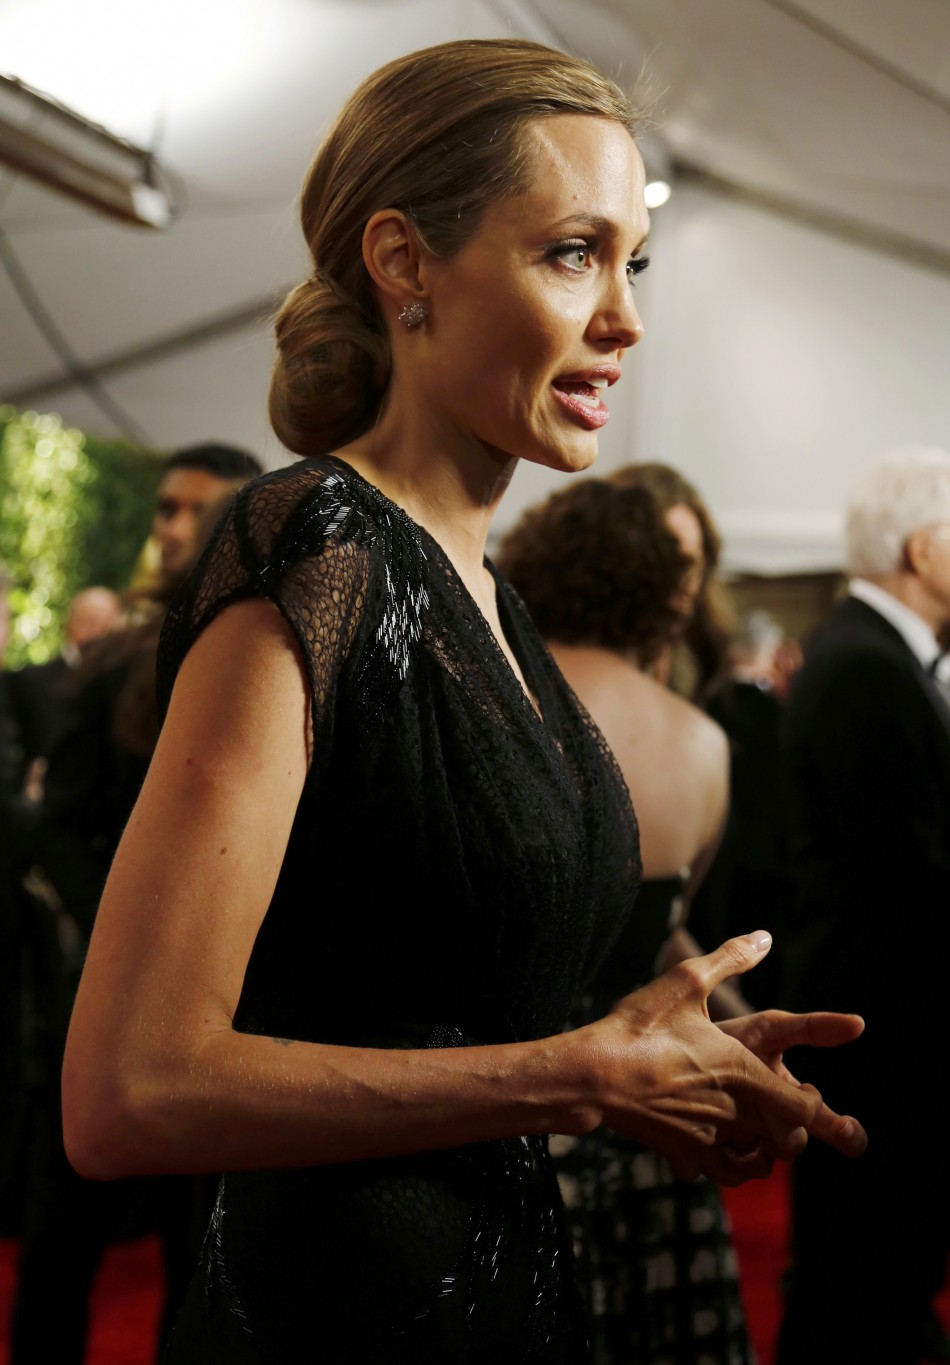 Actress Angelina Jolie is interviewed at the Annual Academy of Motion Picture Arts and Sciences Governors Awards in Hollywood